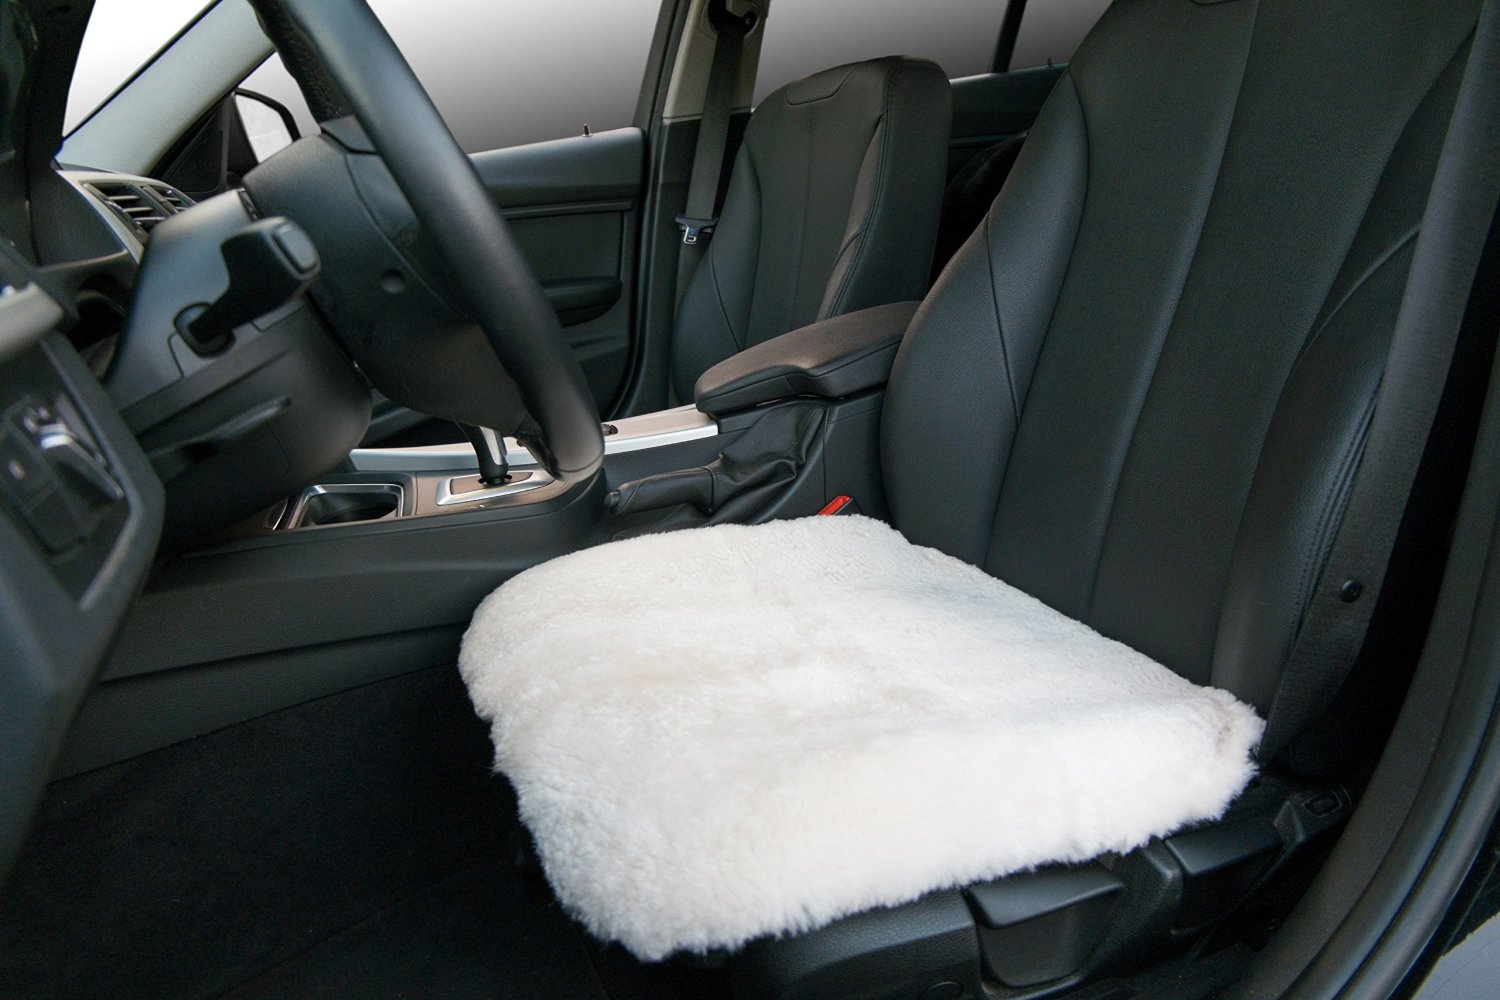 sheepskin chair pad australia jasper design seat of quality luxurious for car office